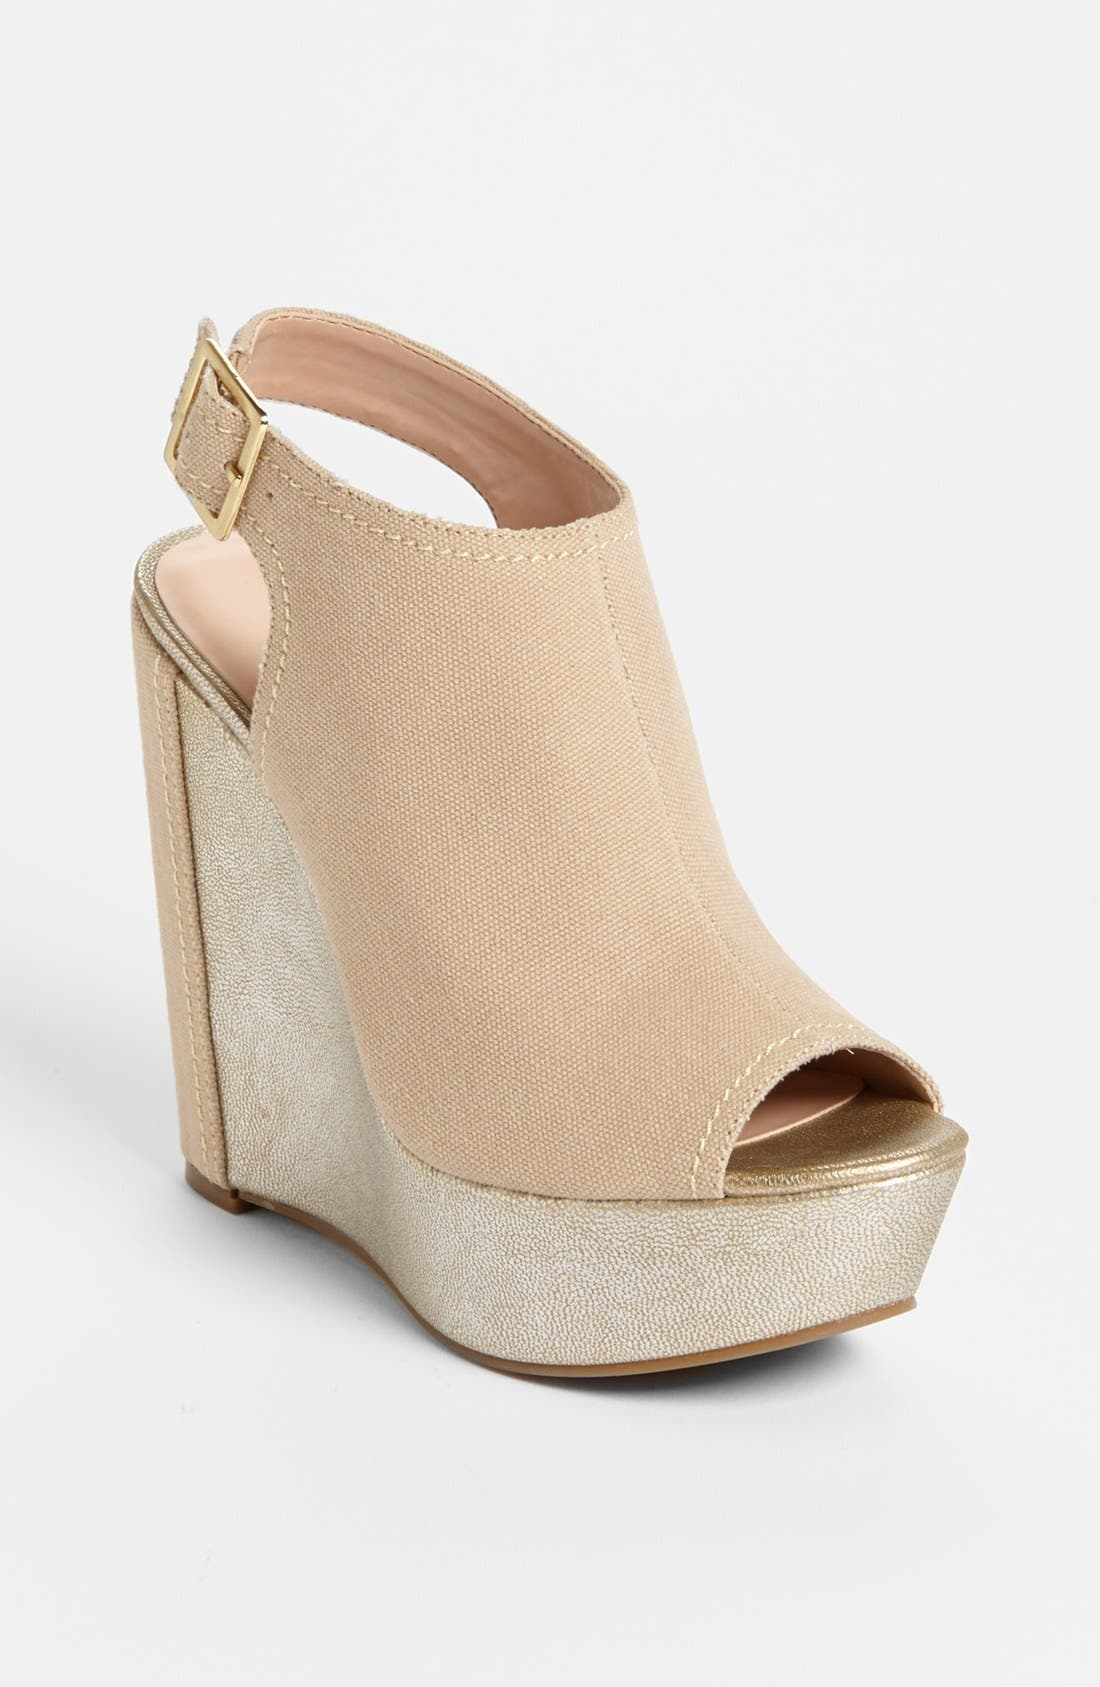 Alternate Image 1 Selected - Julianne Hough for Sole Society 'Erinn' Wedge Sandal